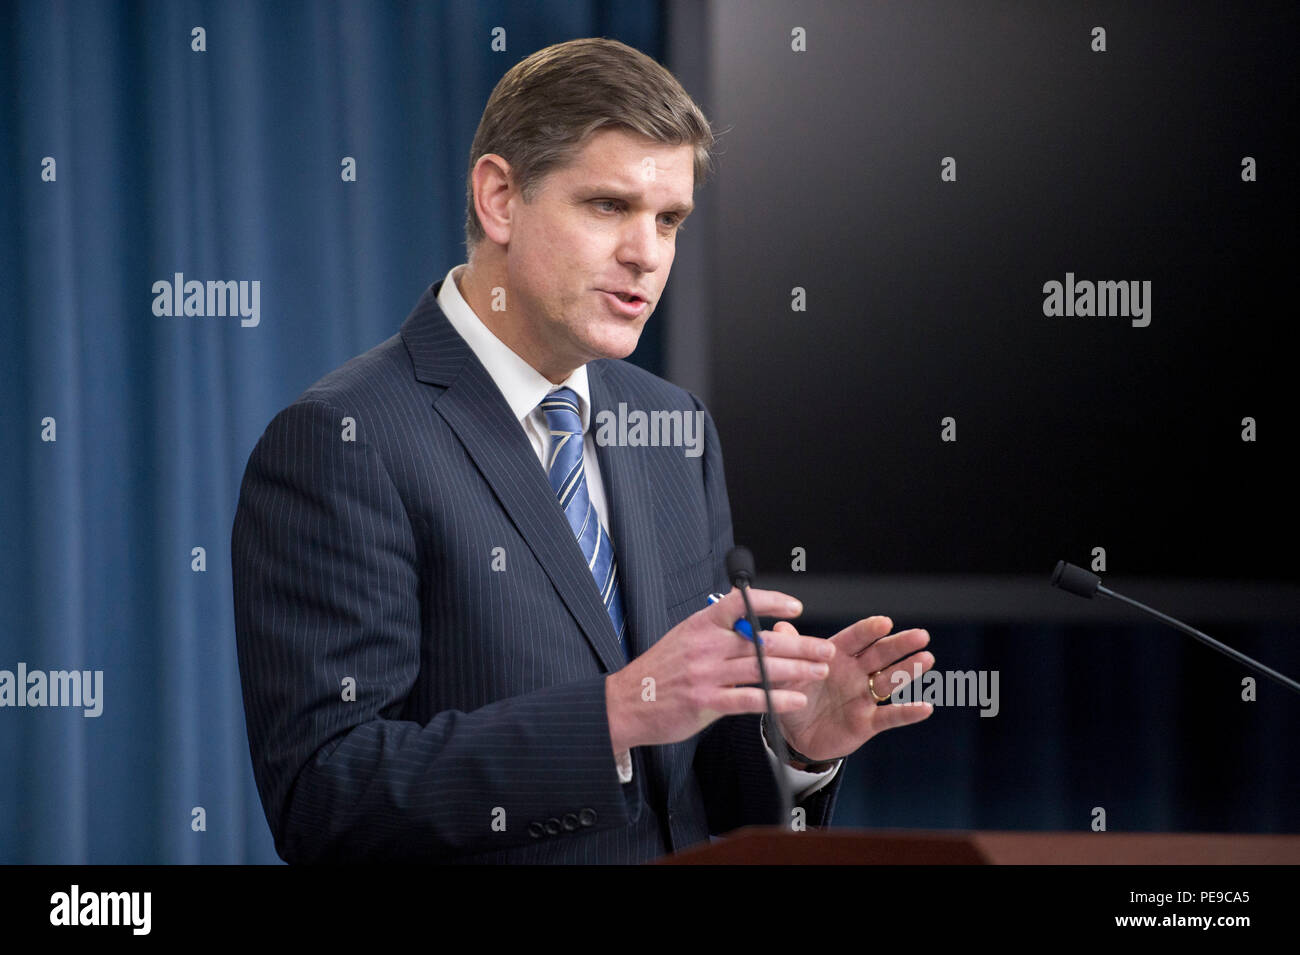 Pentagon Press Secretary Peter Cook briefs reporters on current events within the Department of Defense at the Pentagon Nov. 12, 2015. (Photo by Senior Master Sgt. Adrian Cadiz)(Released) - Stock Image